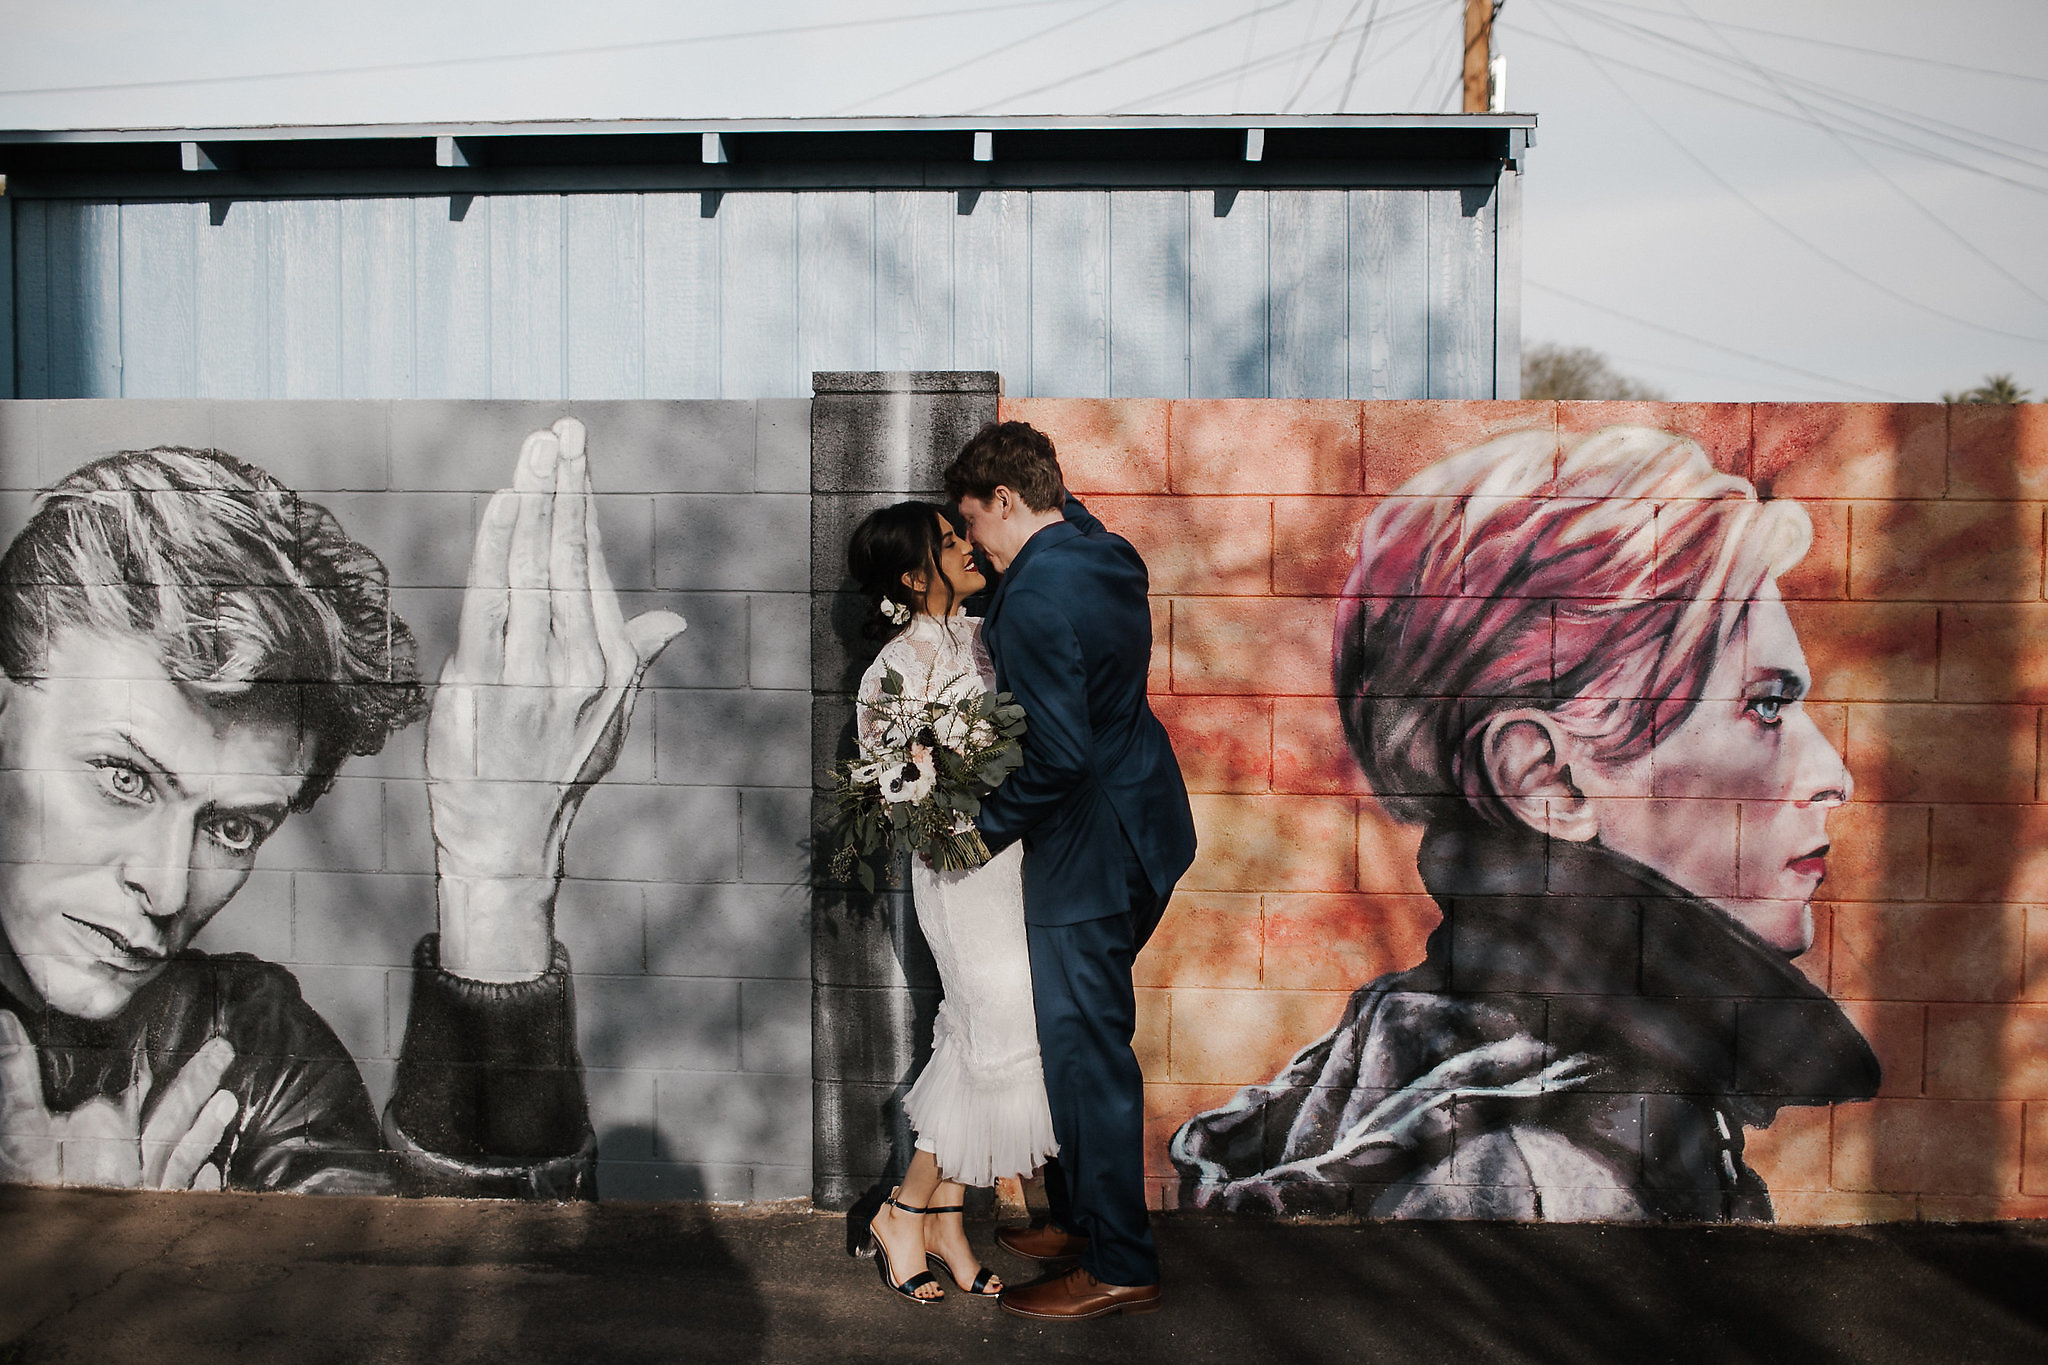 Categories: Weddings-Real Wedding: Milena & Gunnar - Photography by Jamie Allio